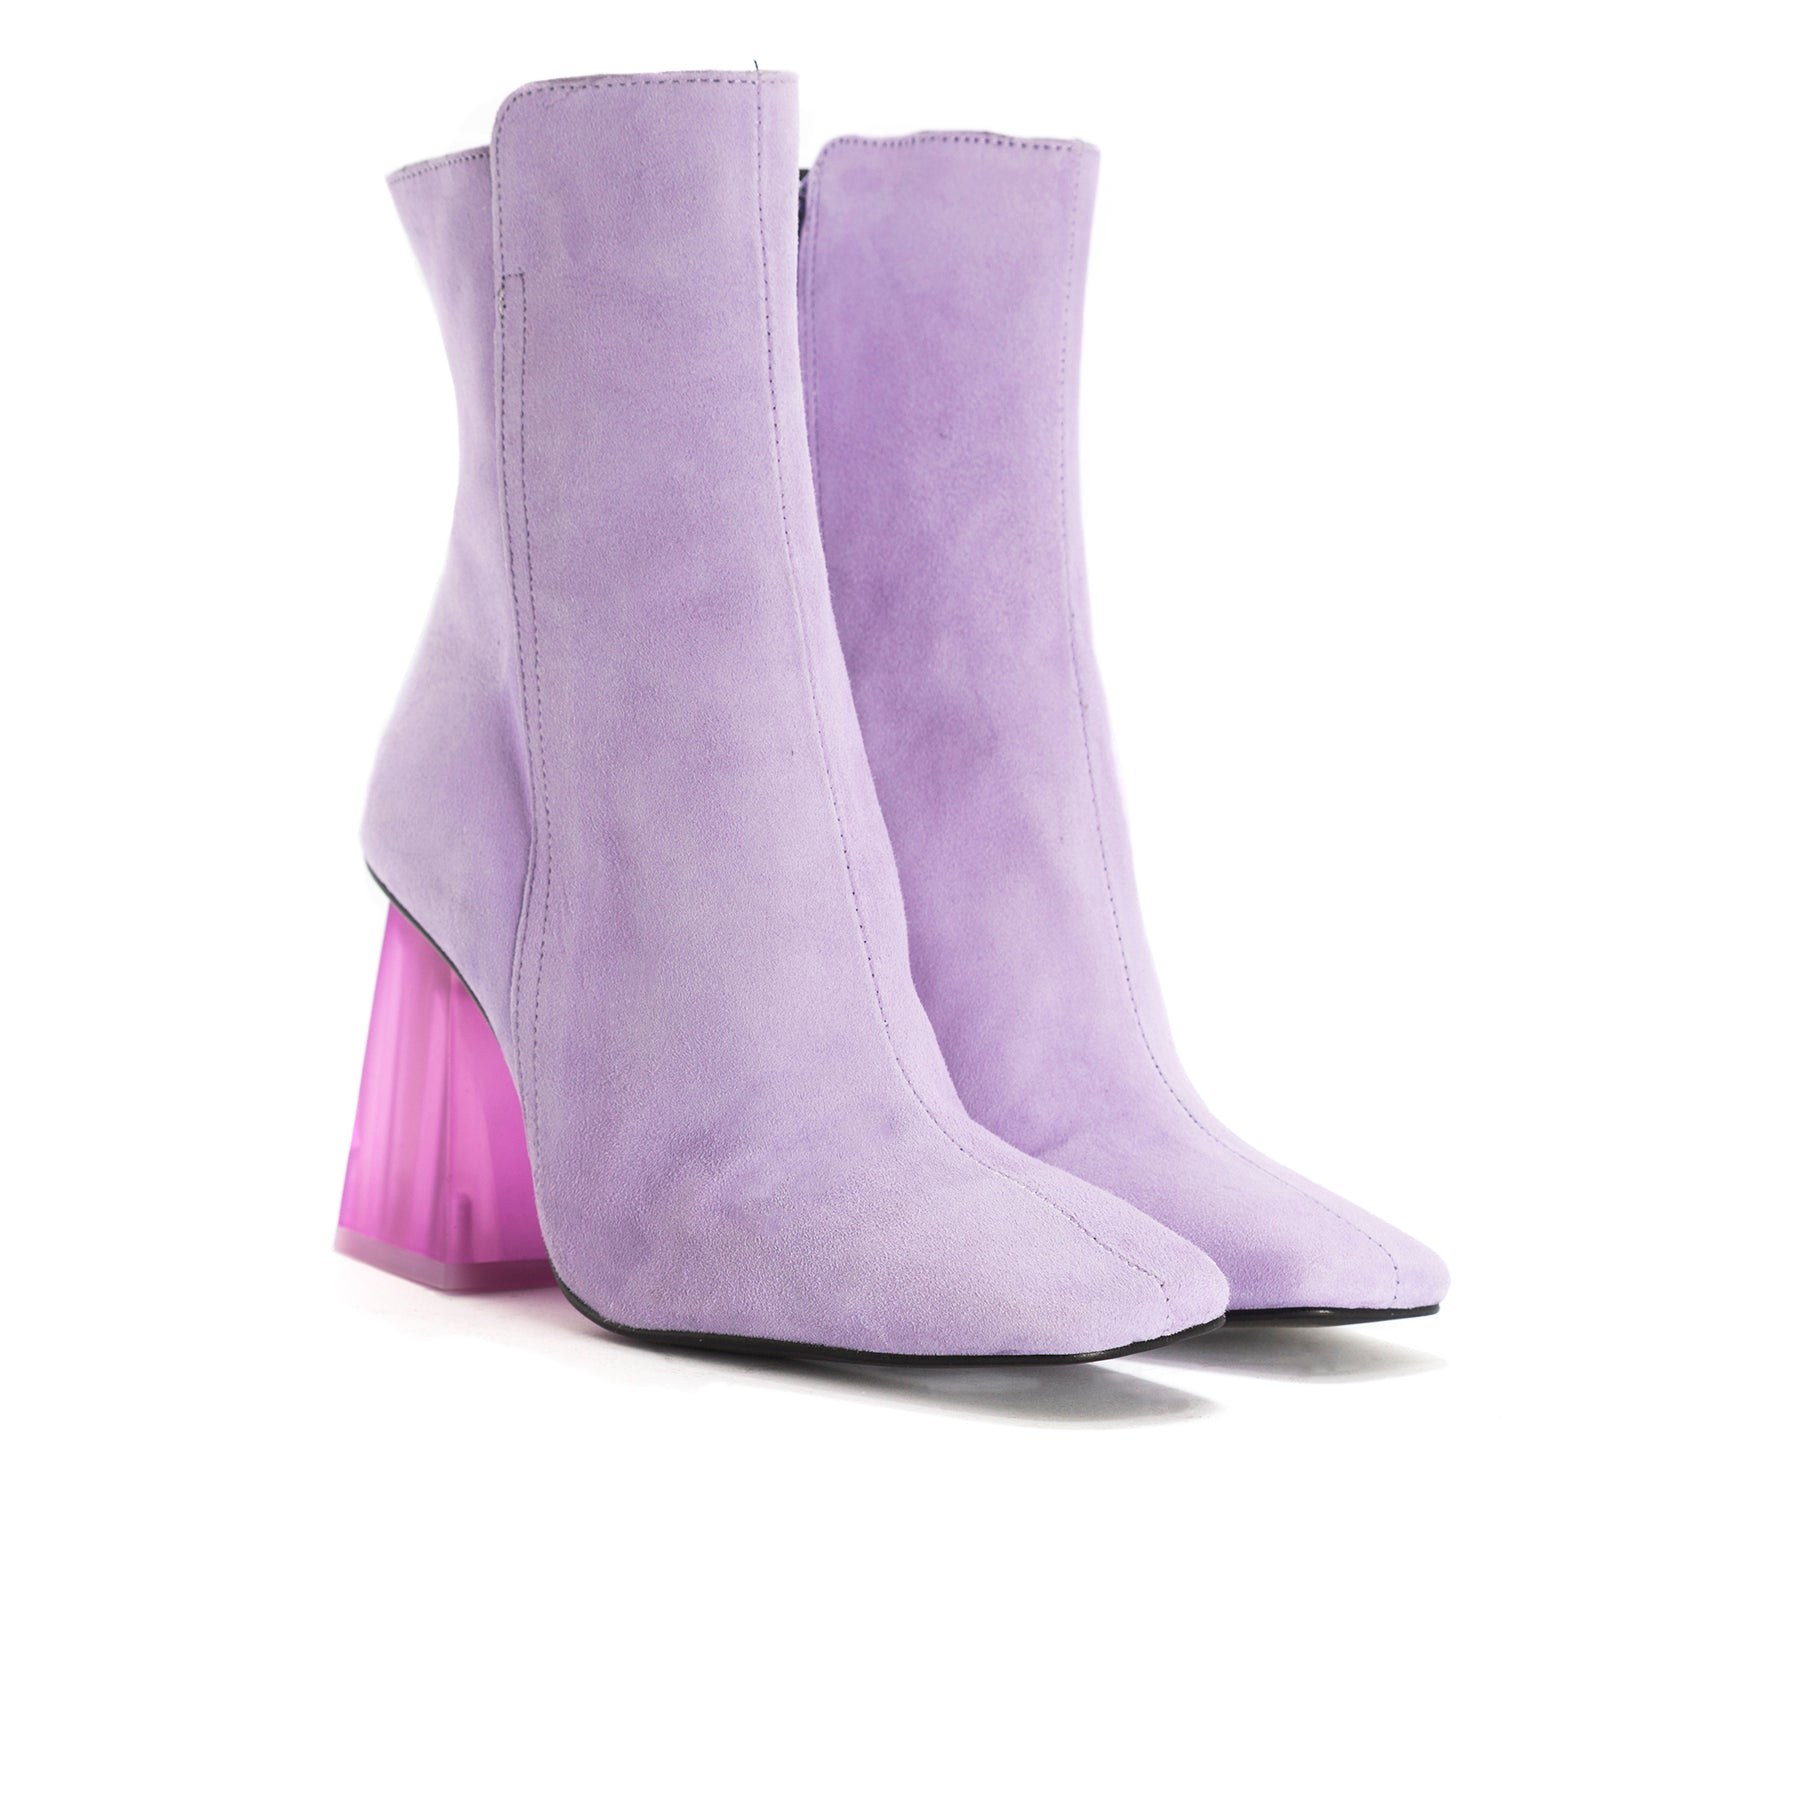 Beaufort Lilac Suede Ankle Boots